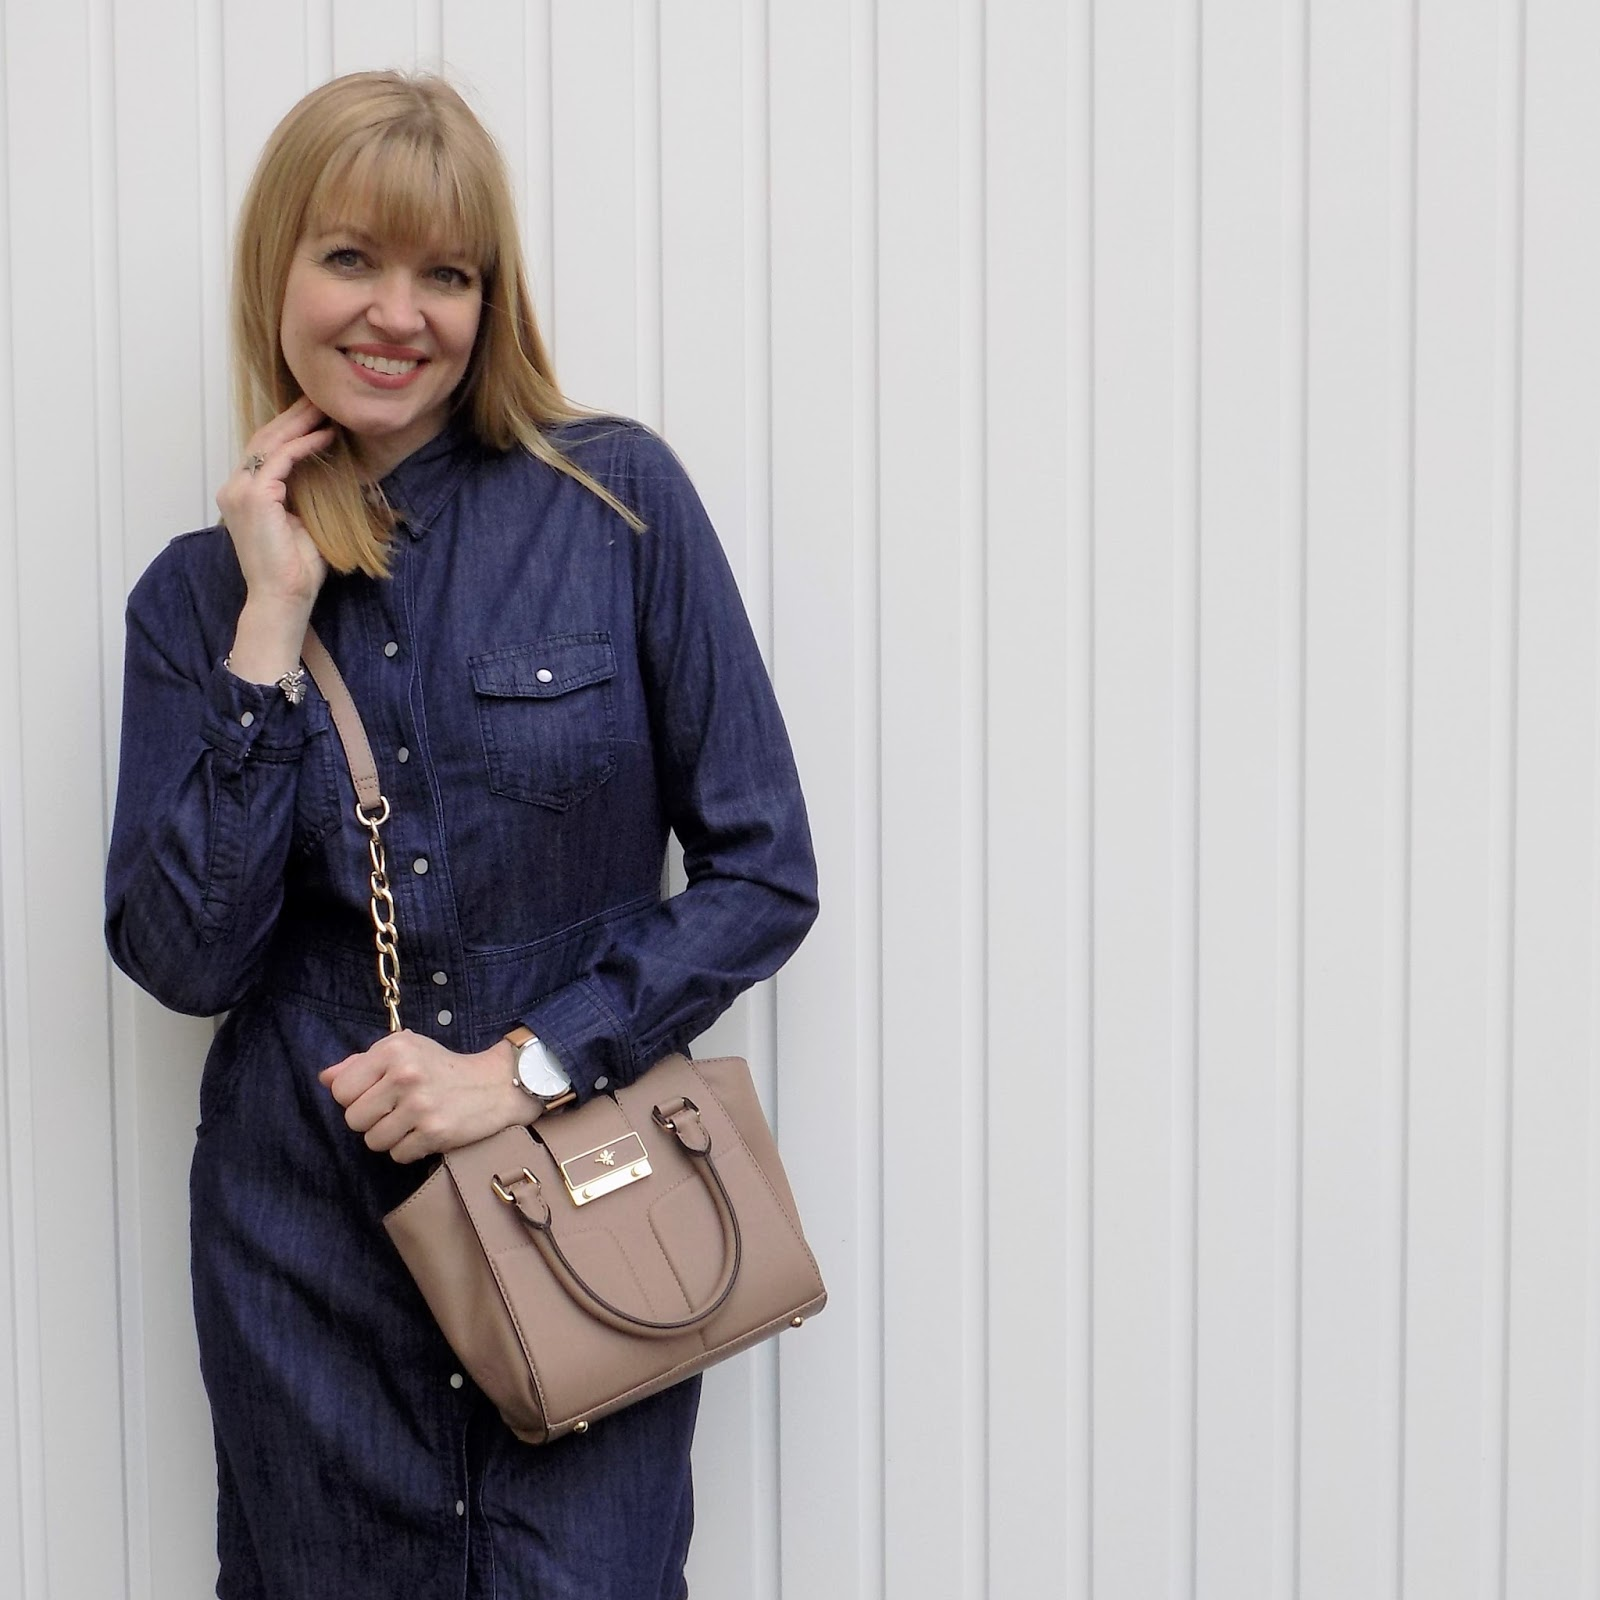 Boden denim shirt dress and brogues with Ilex Alexa bag